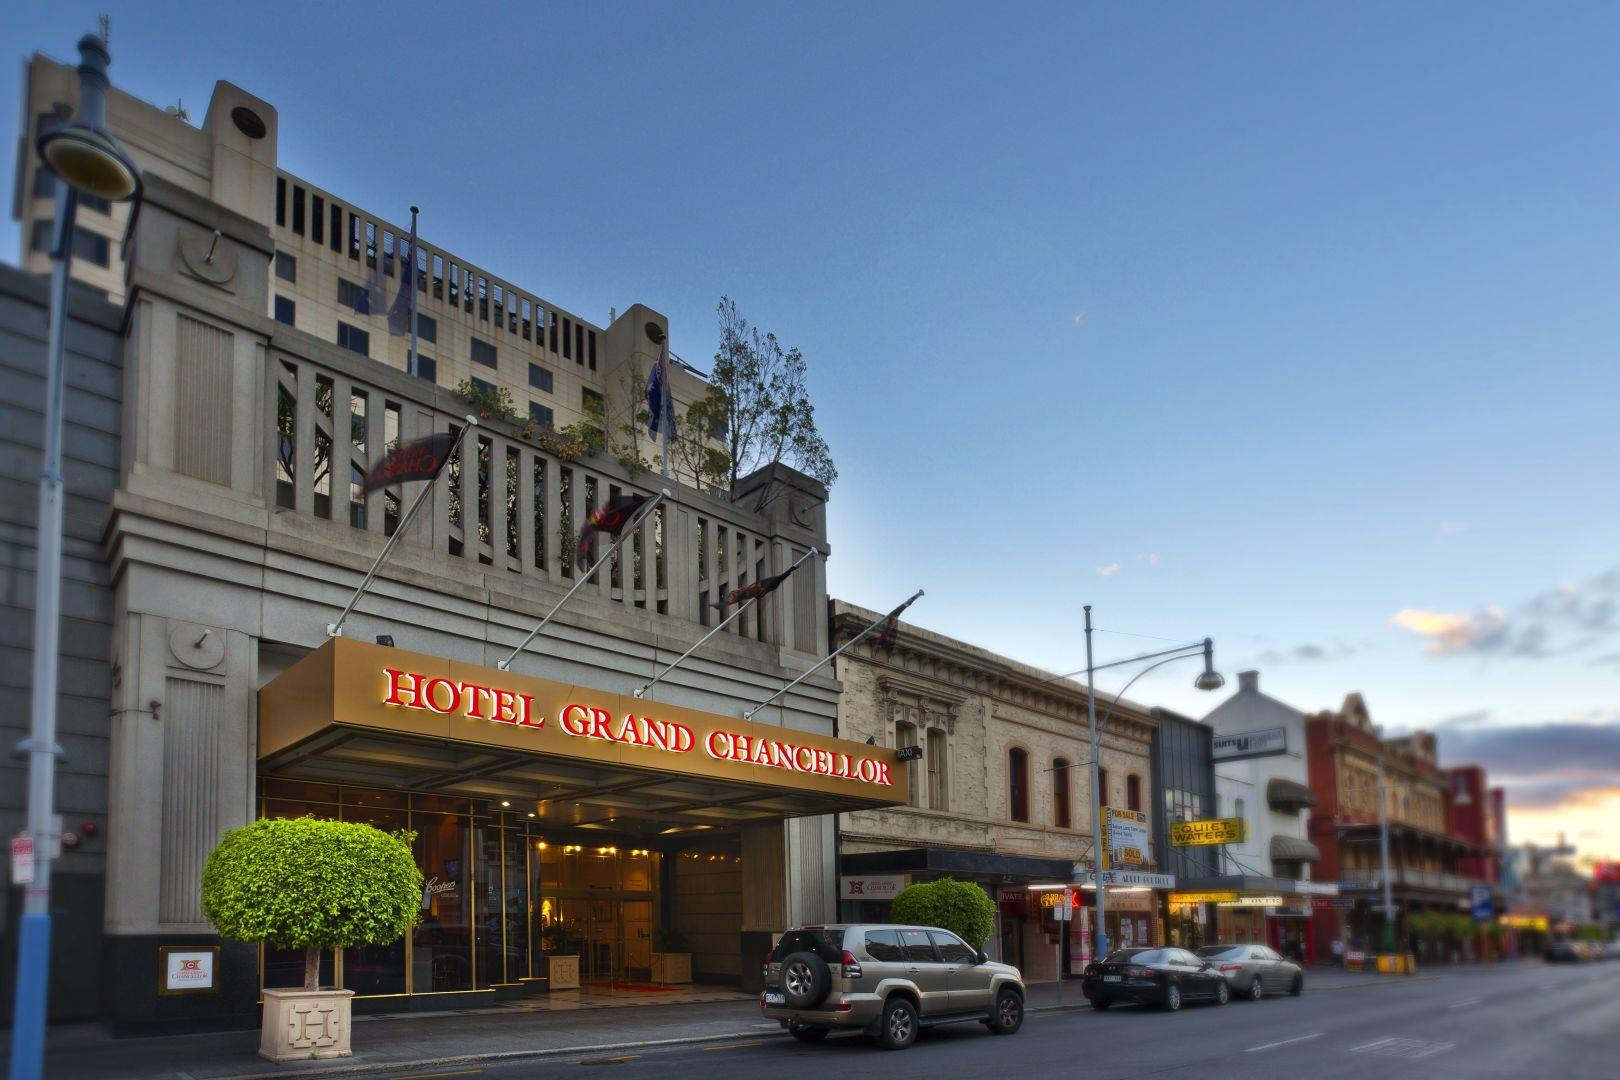 Hotel Grand Chancellor Adelaide